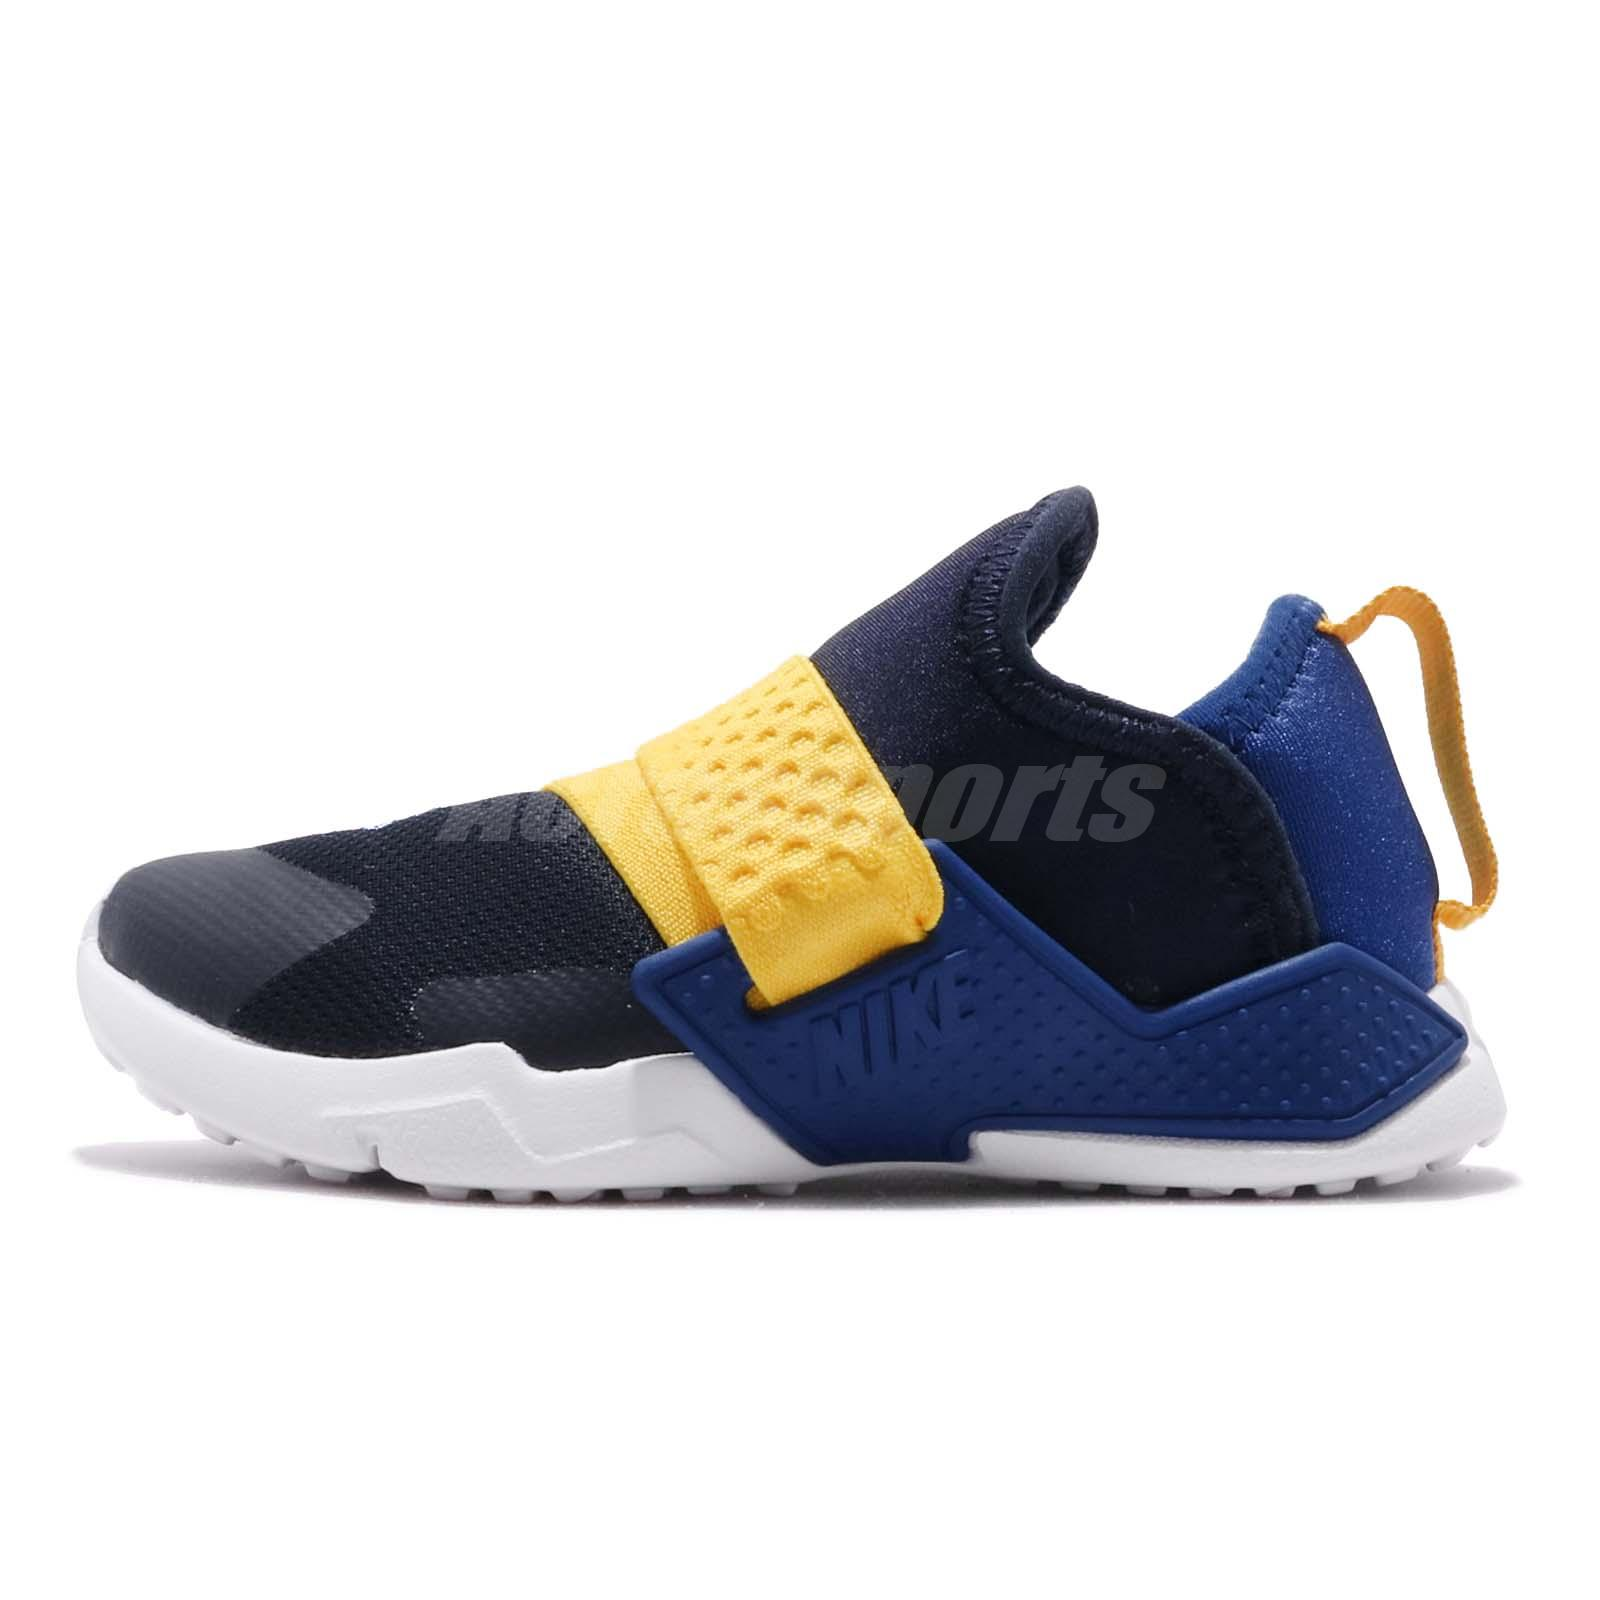 the best attitude db616 56efa Details about Nike Huarache Extreme TD Navy Blue Yellow Toddler Infant Slip  On Shoe AH7827-404